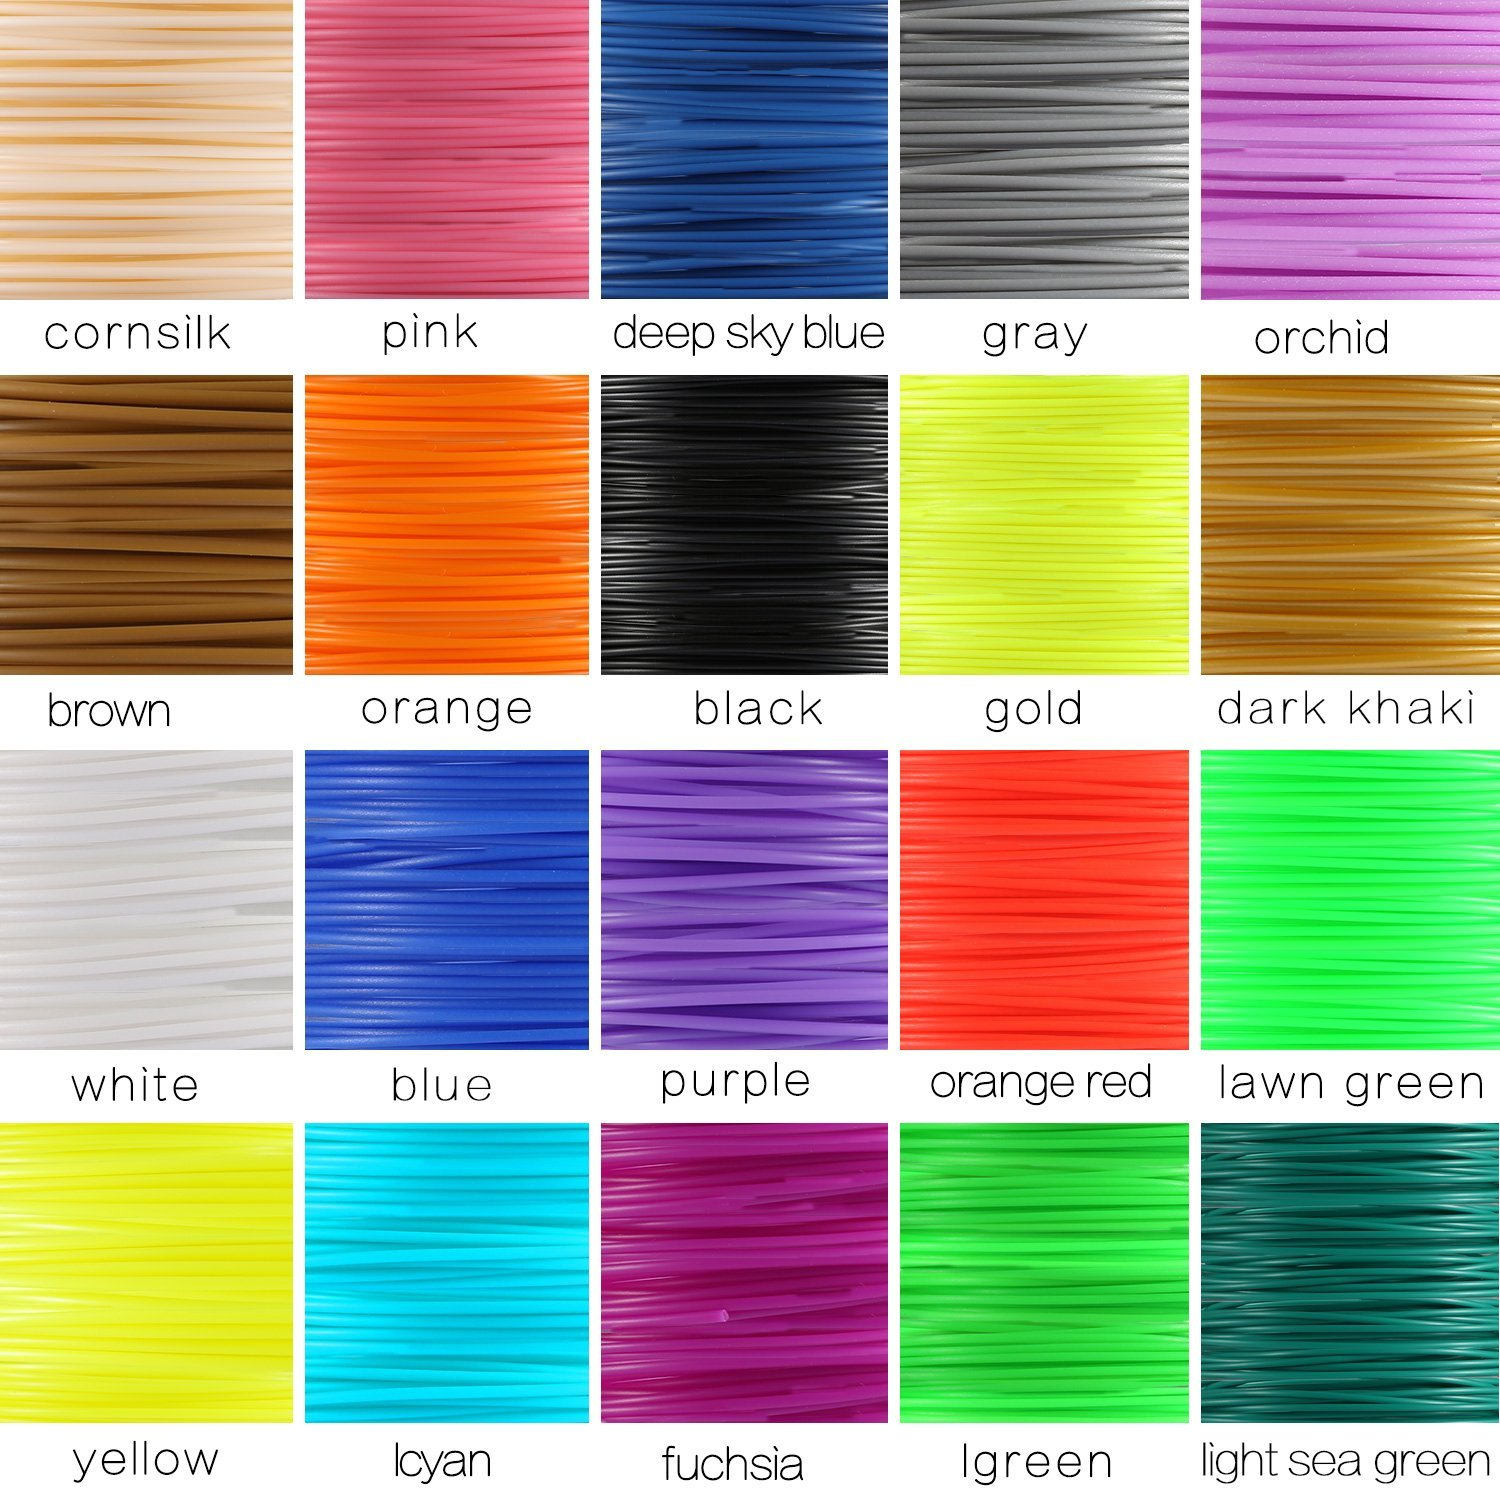 3D Pen Filament Refills, DIKI 1.75mm PLA Total 20 Different Colors 16 Colors 4 Luminous Colors 16ft Each for 3D Printing Drawing Pen and Printer, No odor and Fumes